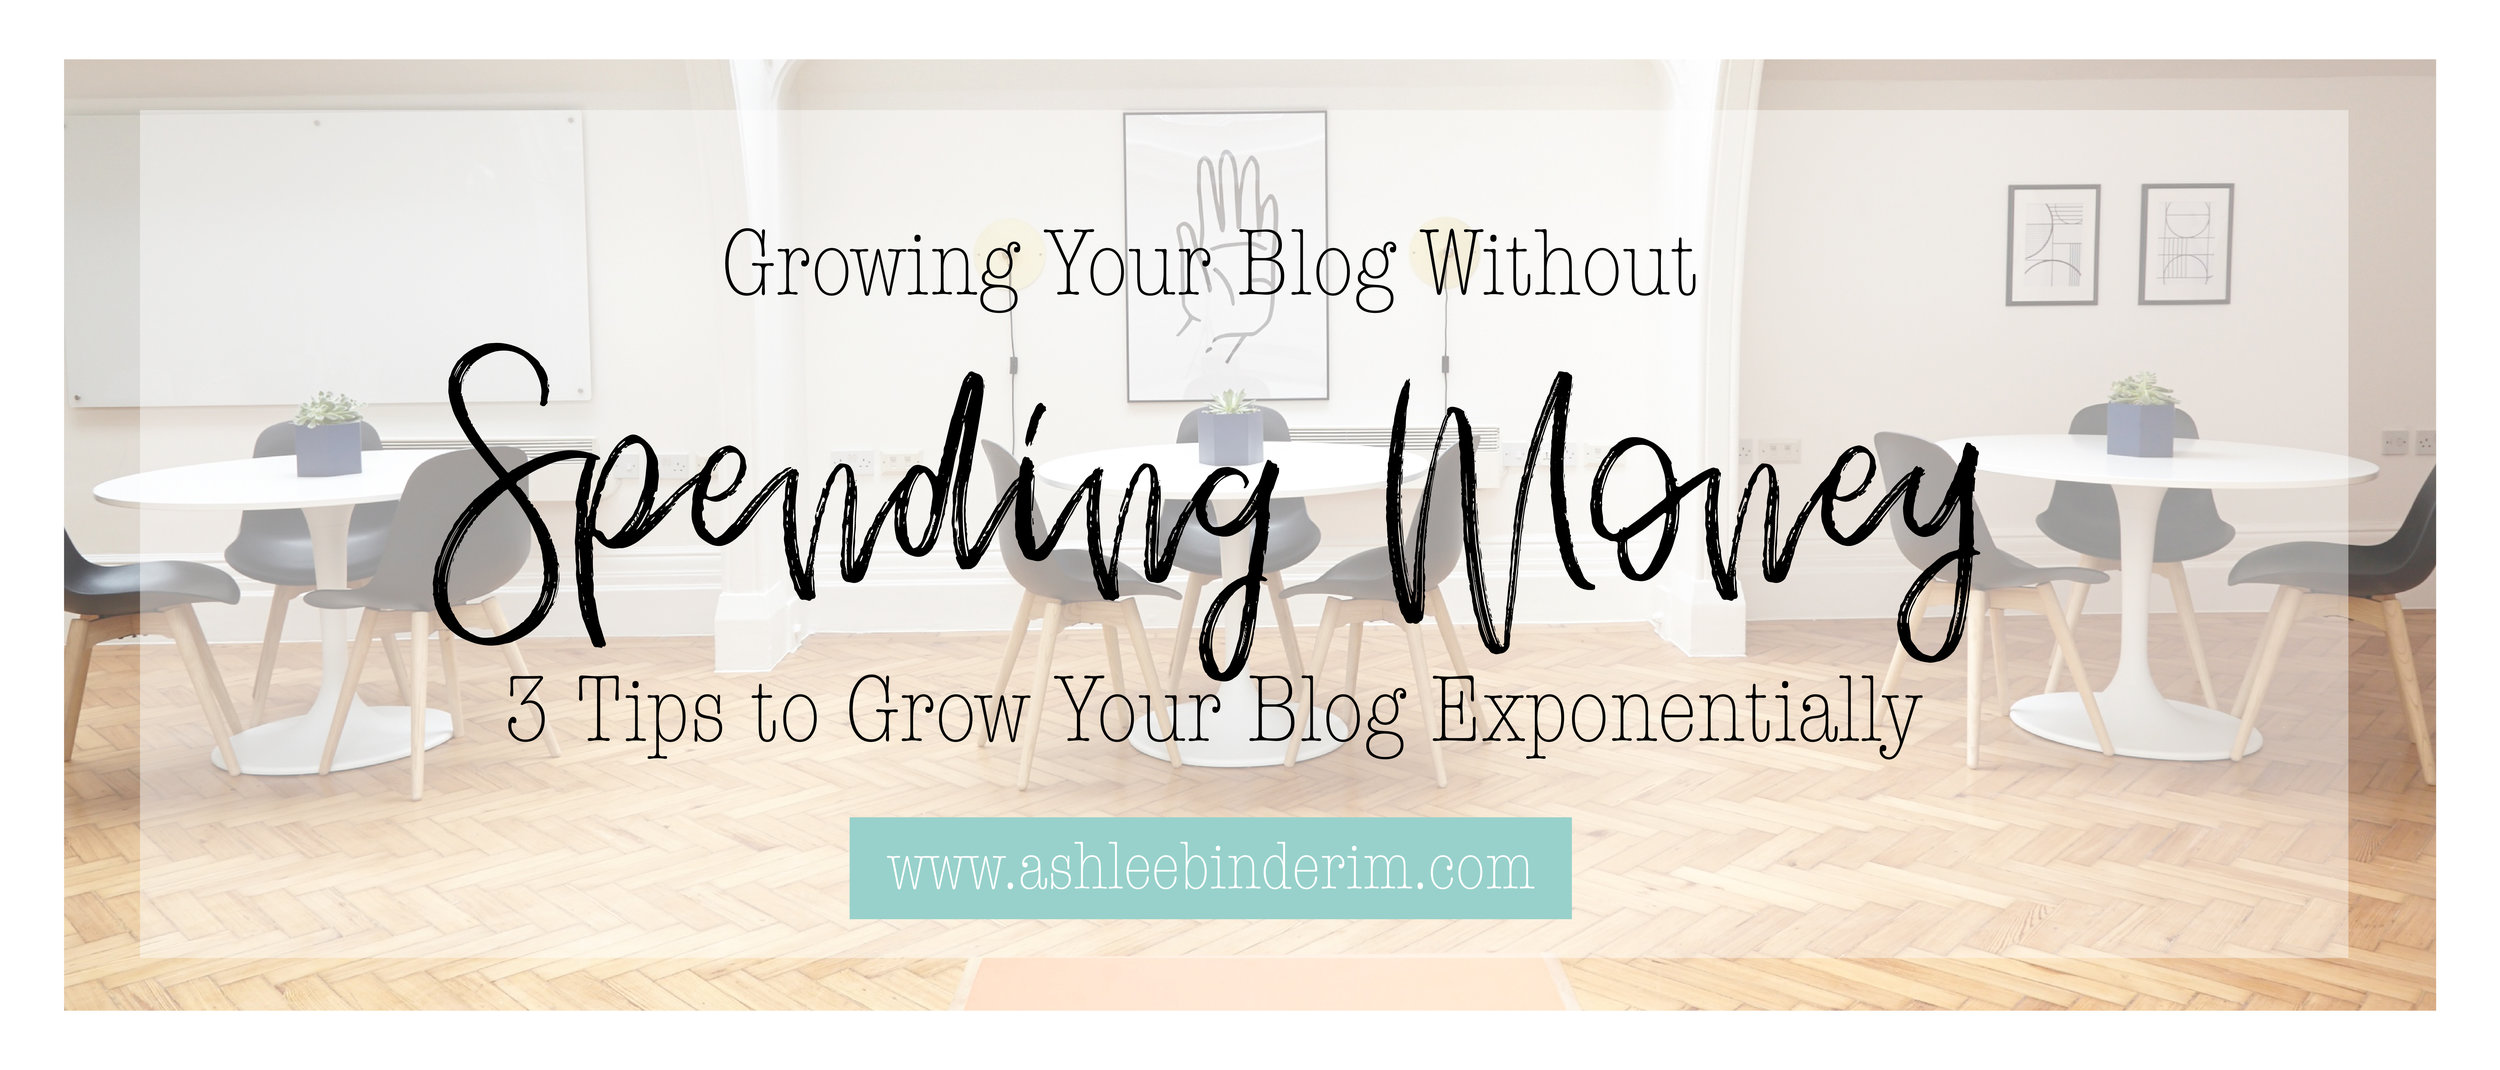 Growing Your Blog Without Spending Money